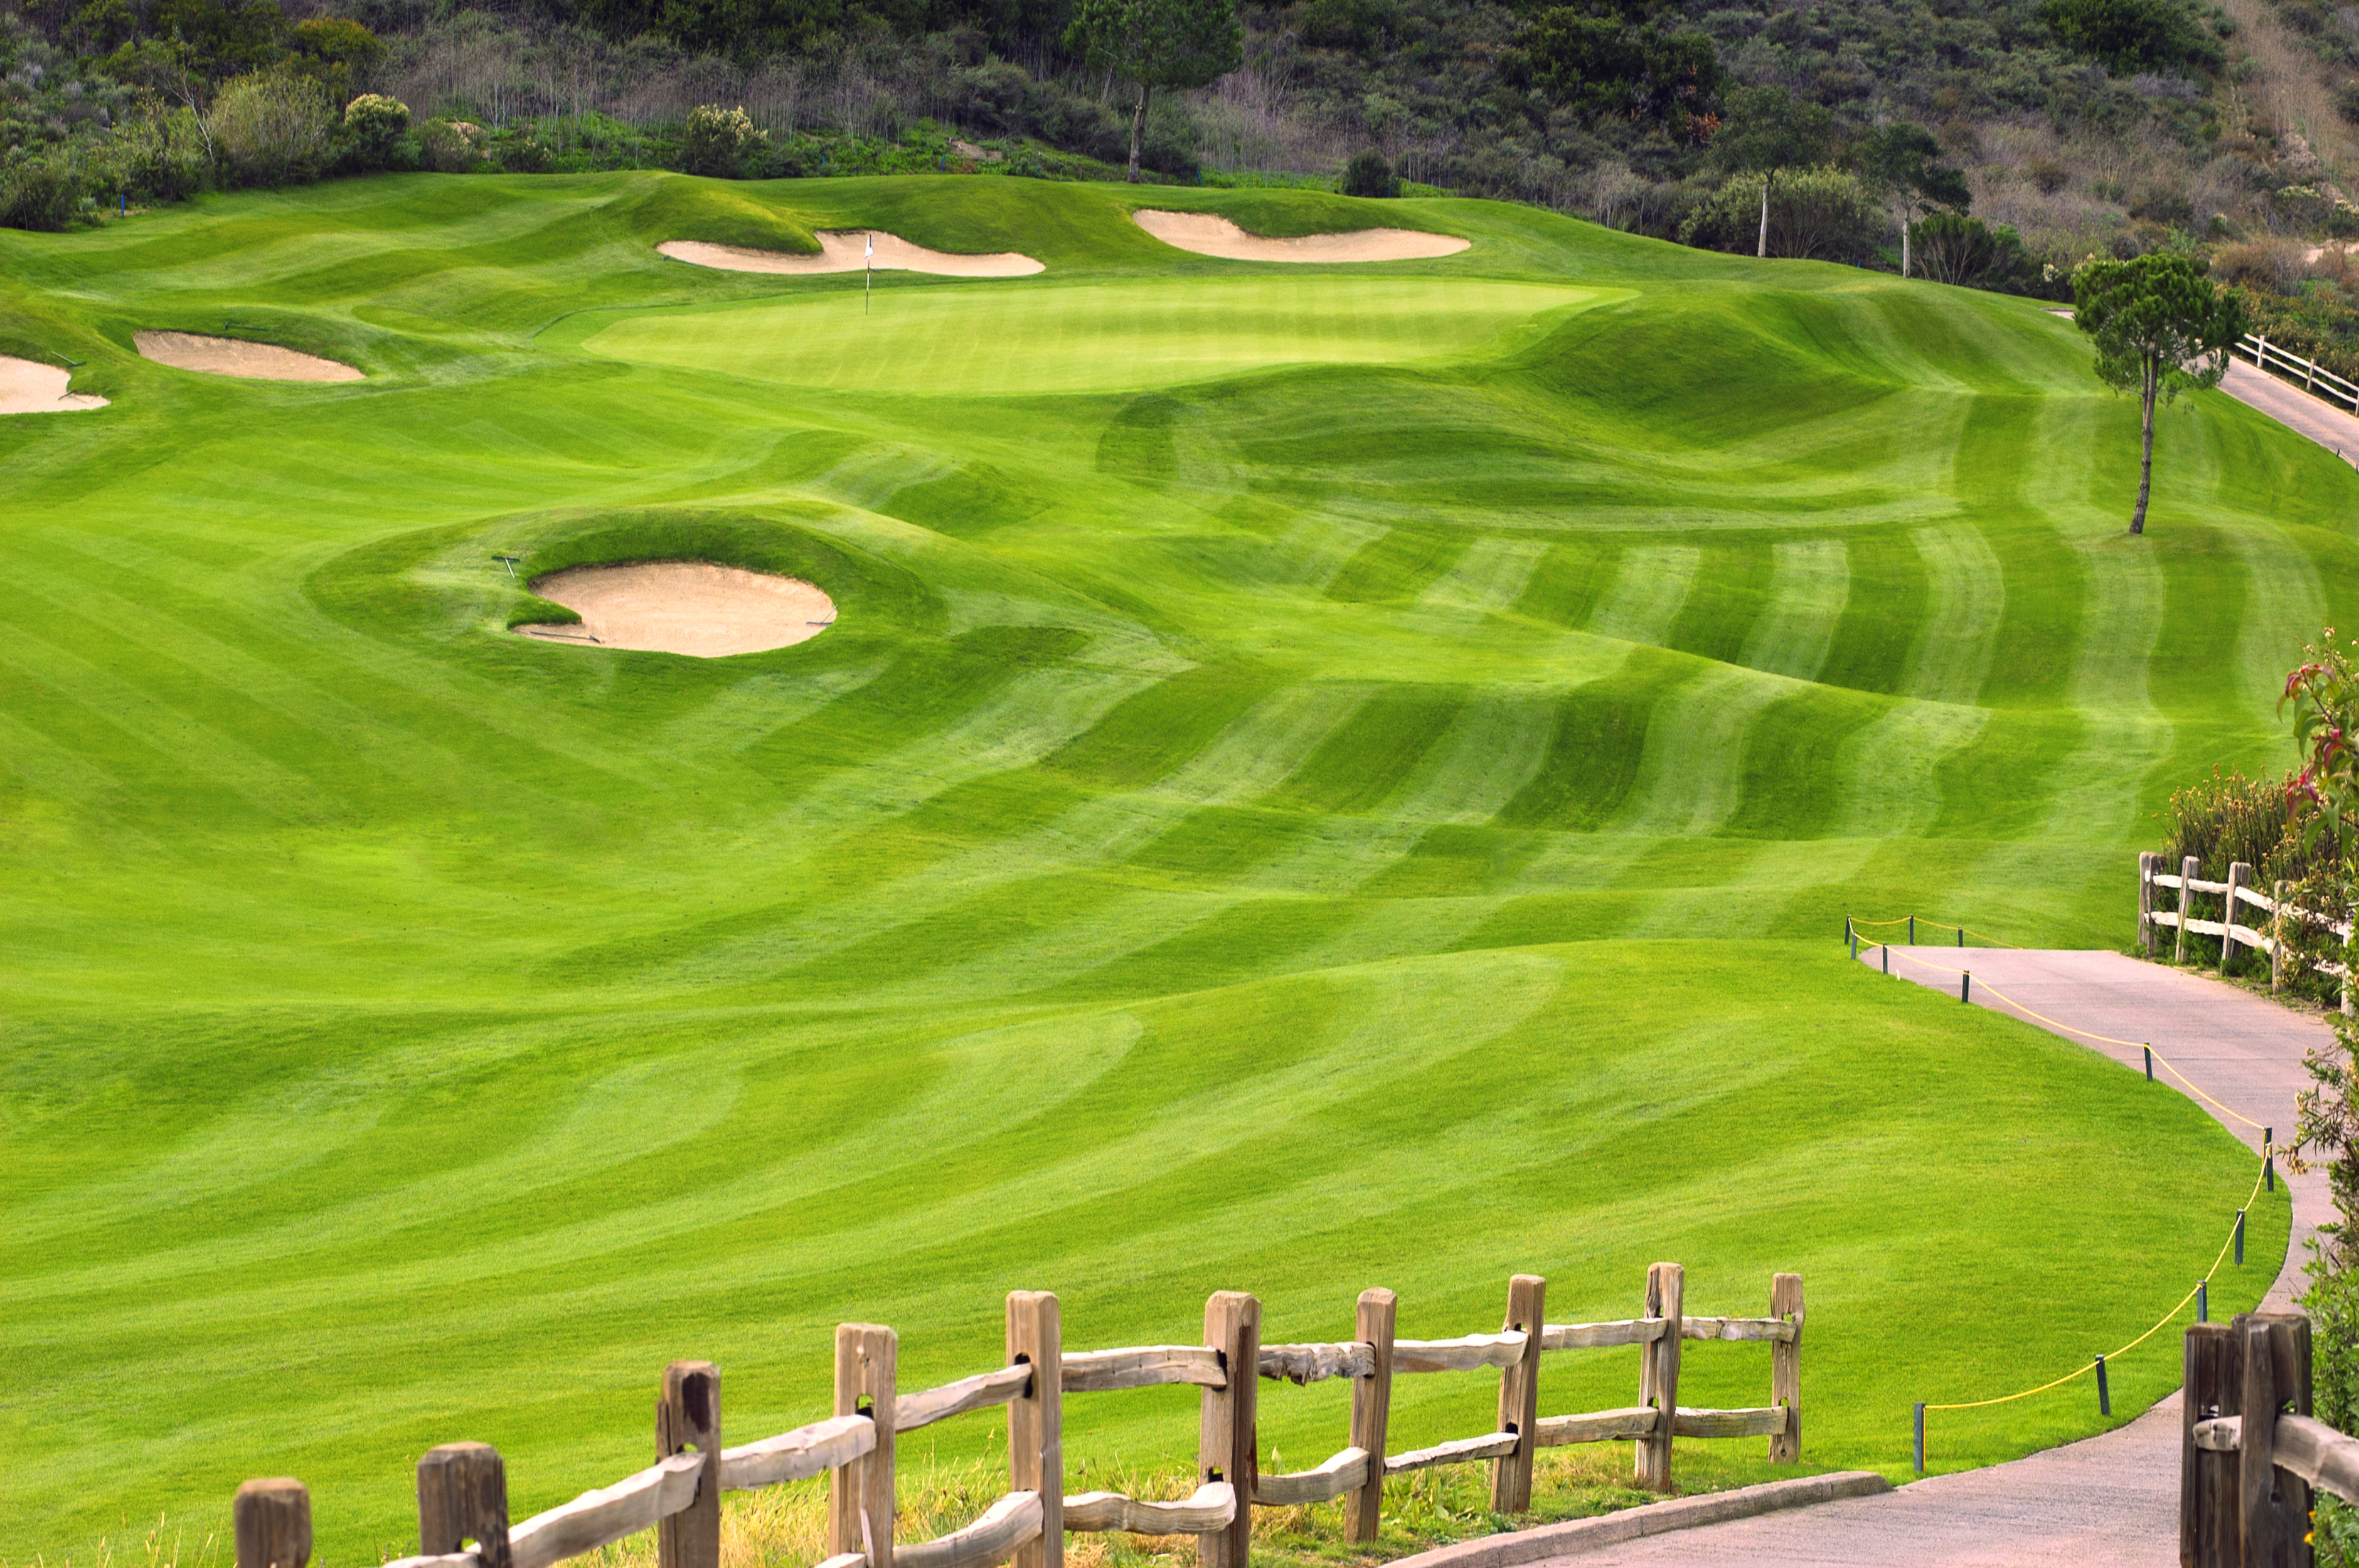 Golf course hd wallpaper background image 3760x2500 id 738354 wallpaper abyss - Golf wallpaper hd ...